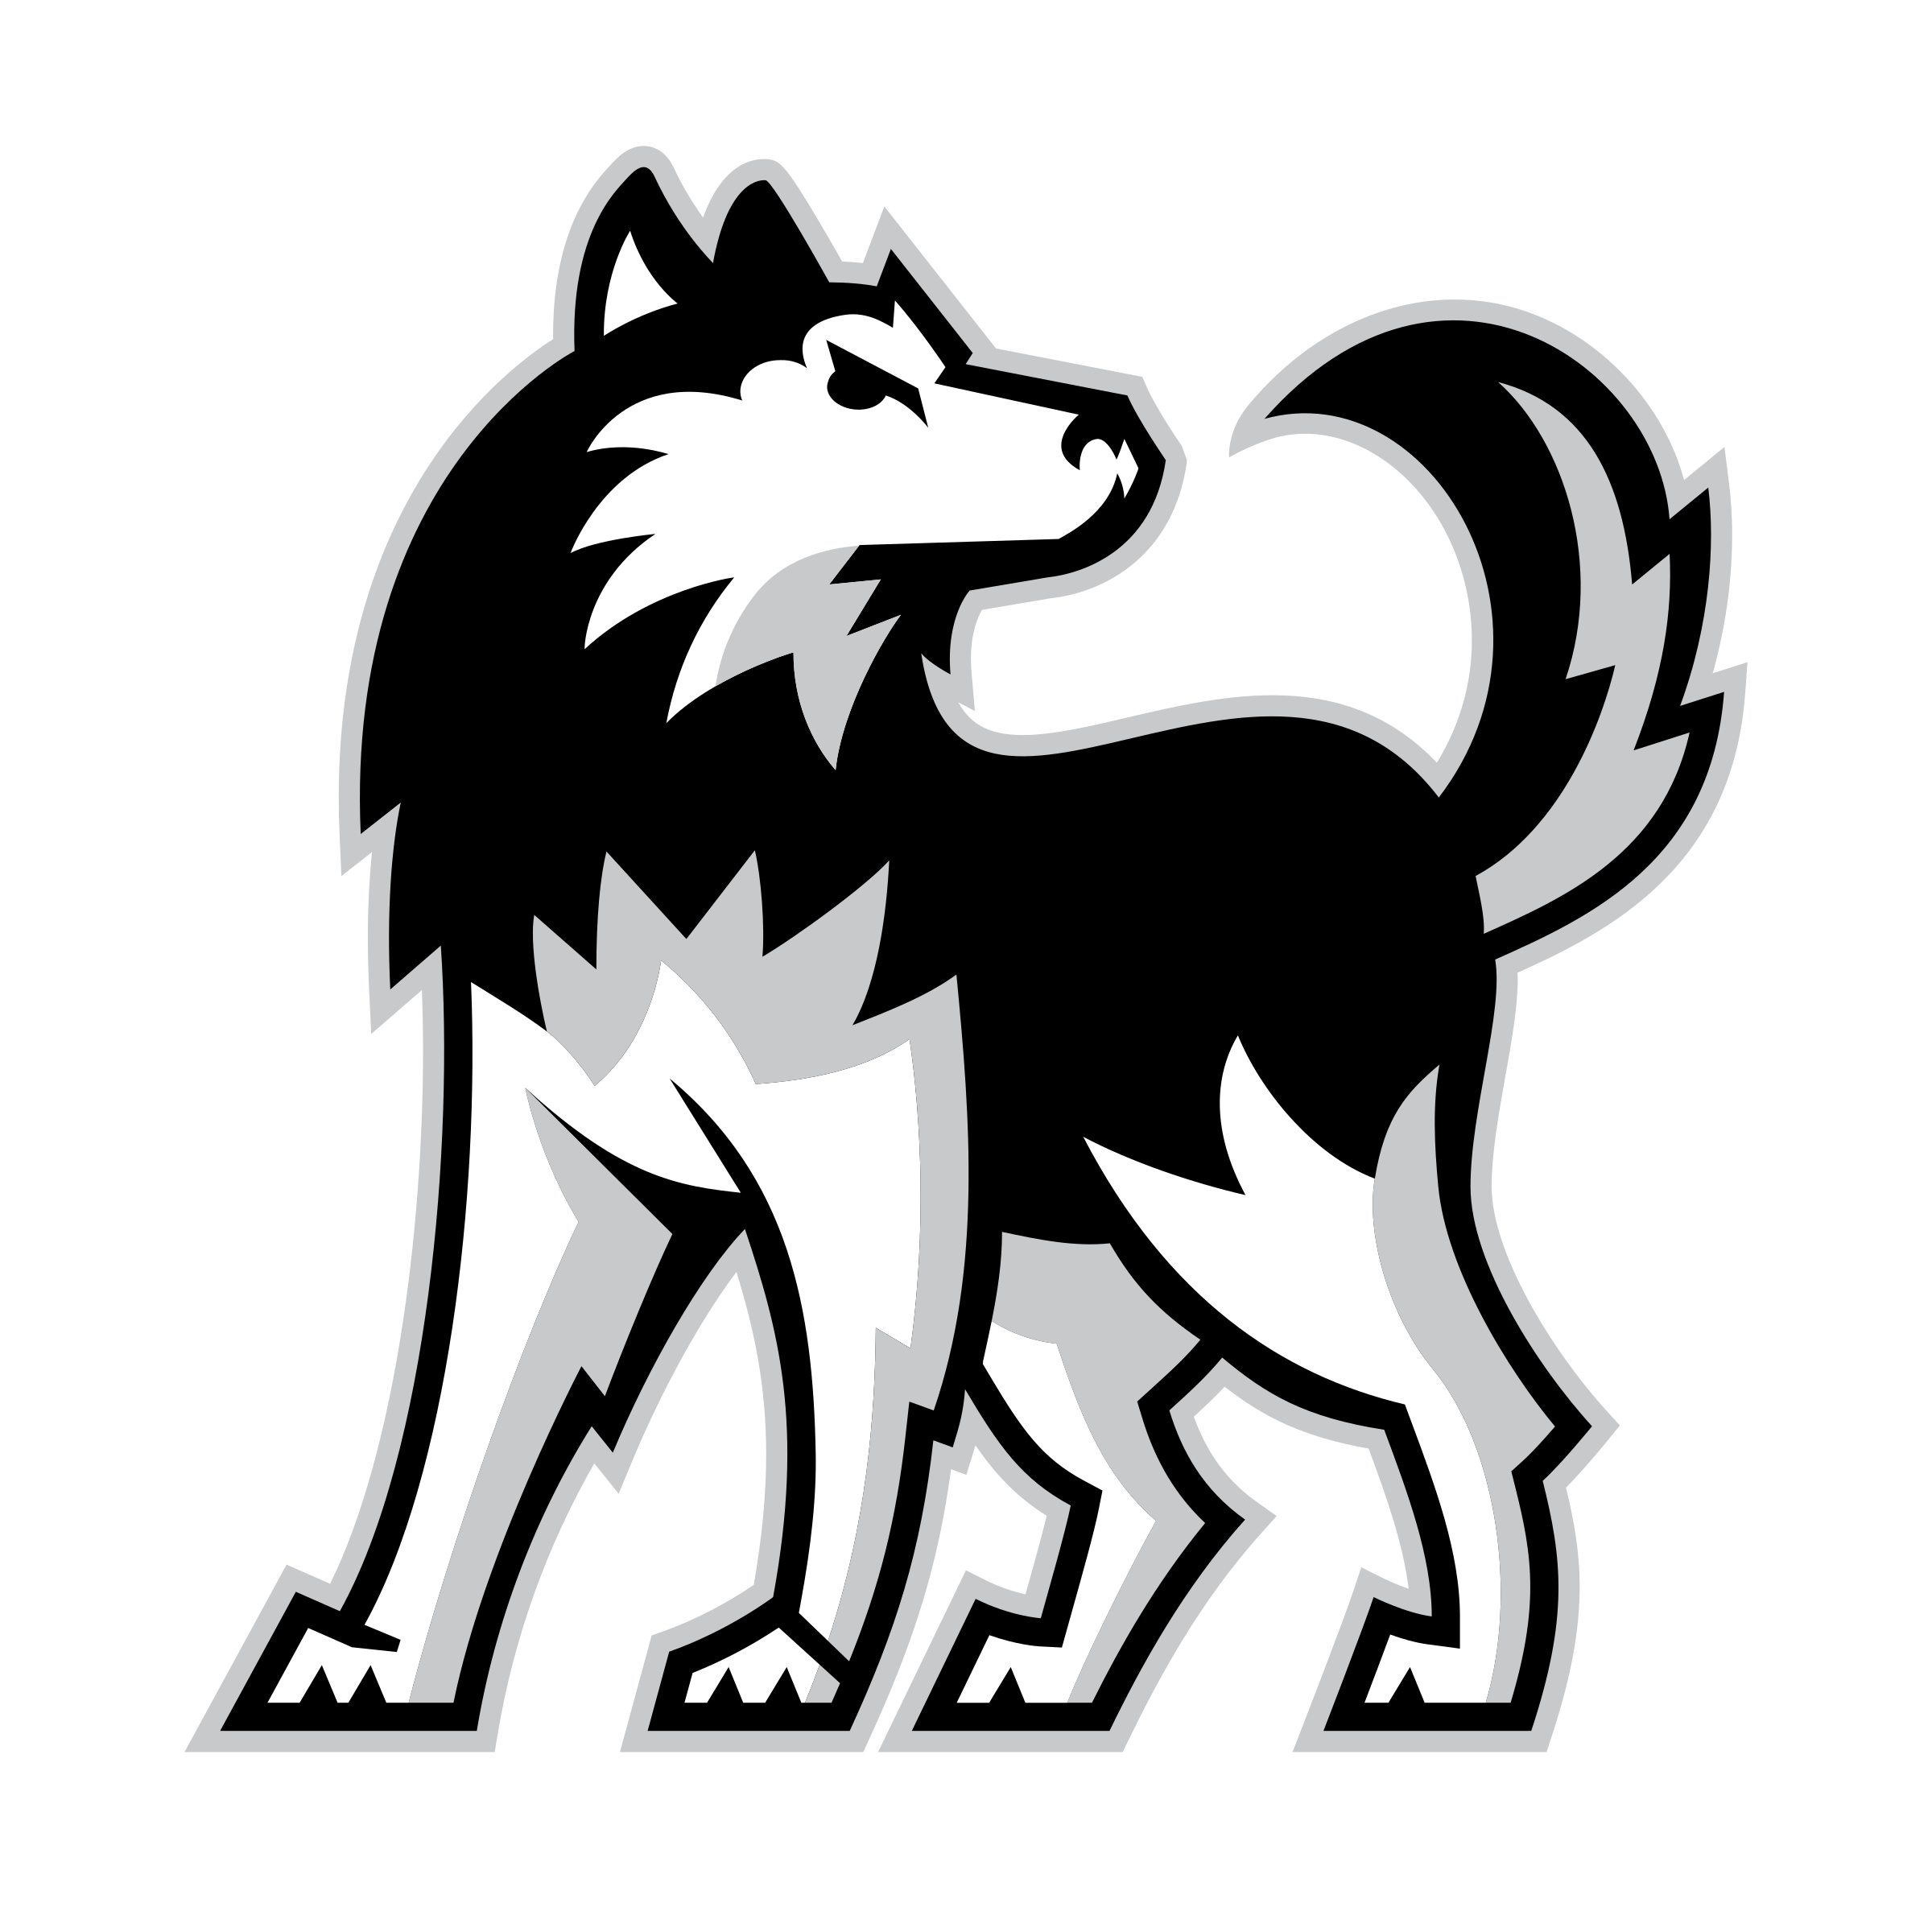 Scorpions football logo clipart picture freeuse NIU Huskies Logo PNG Transparent & SVG Vector - Freebie Supply picture freeuse